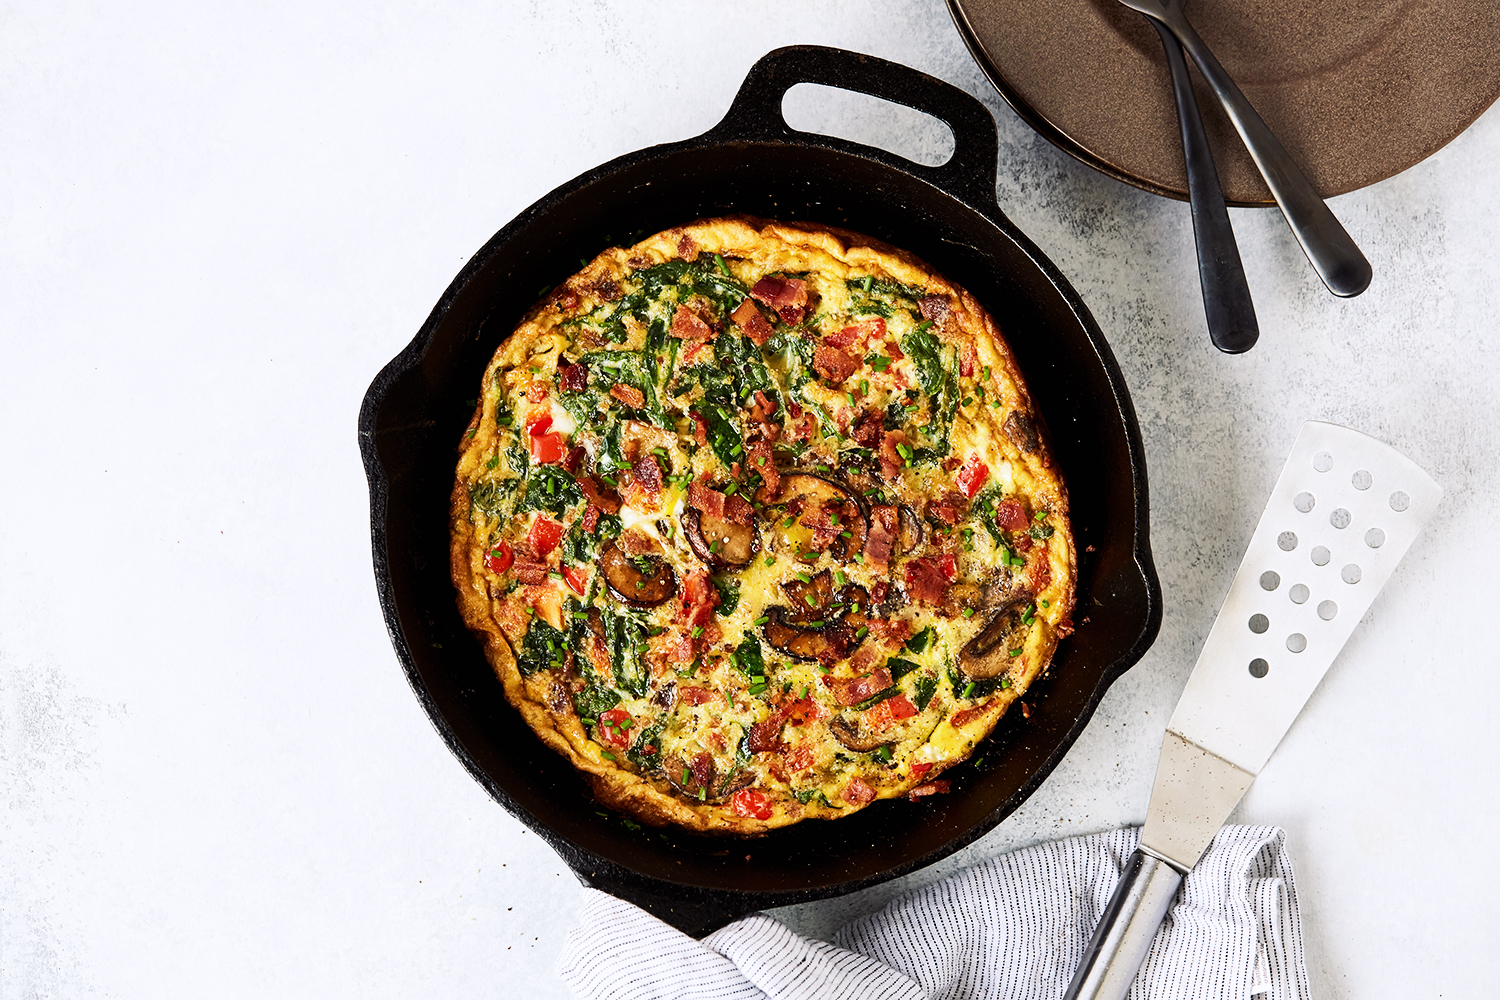 How To Make The Perfect Leftovers Frittata Great For Brunch Or Meal Prep Tasty Yummies